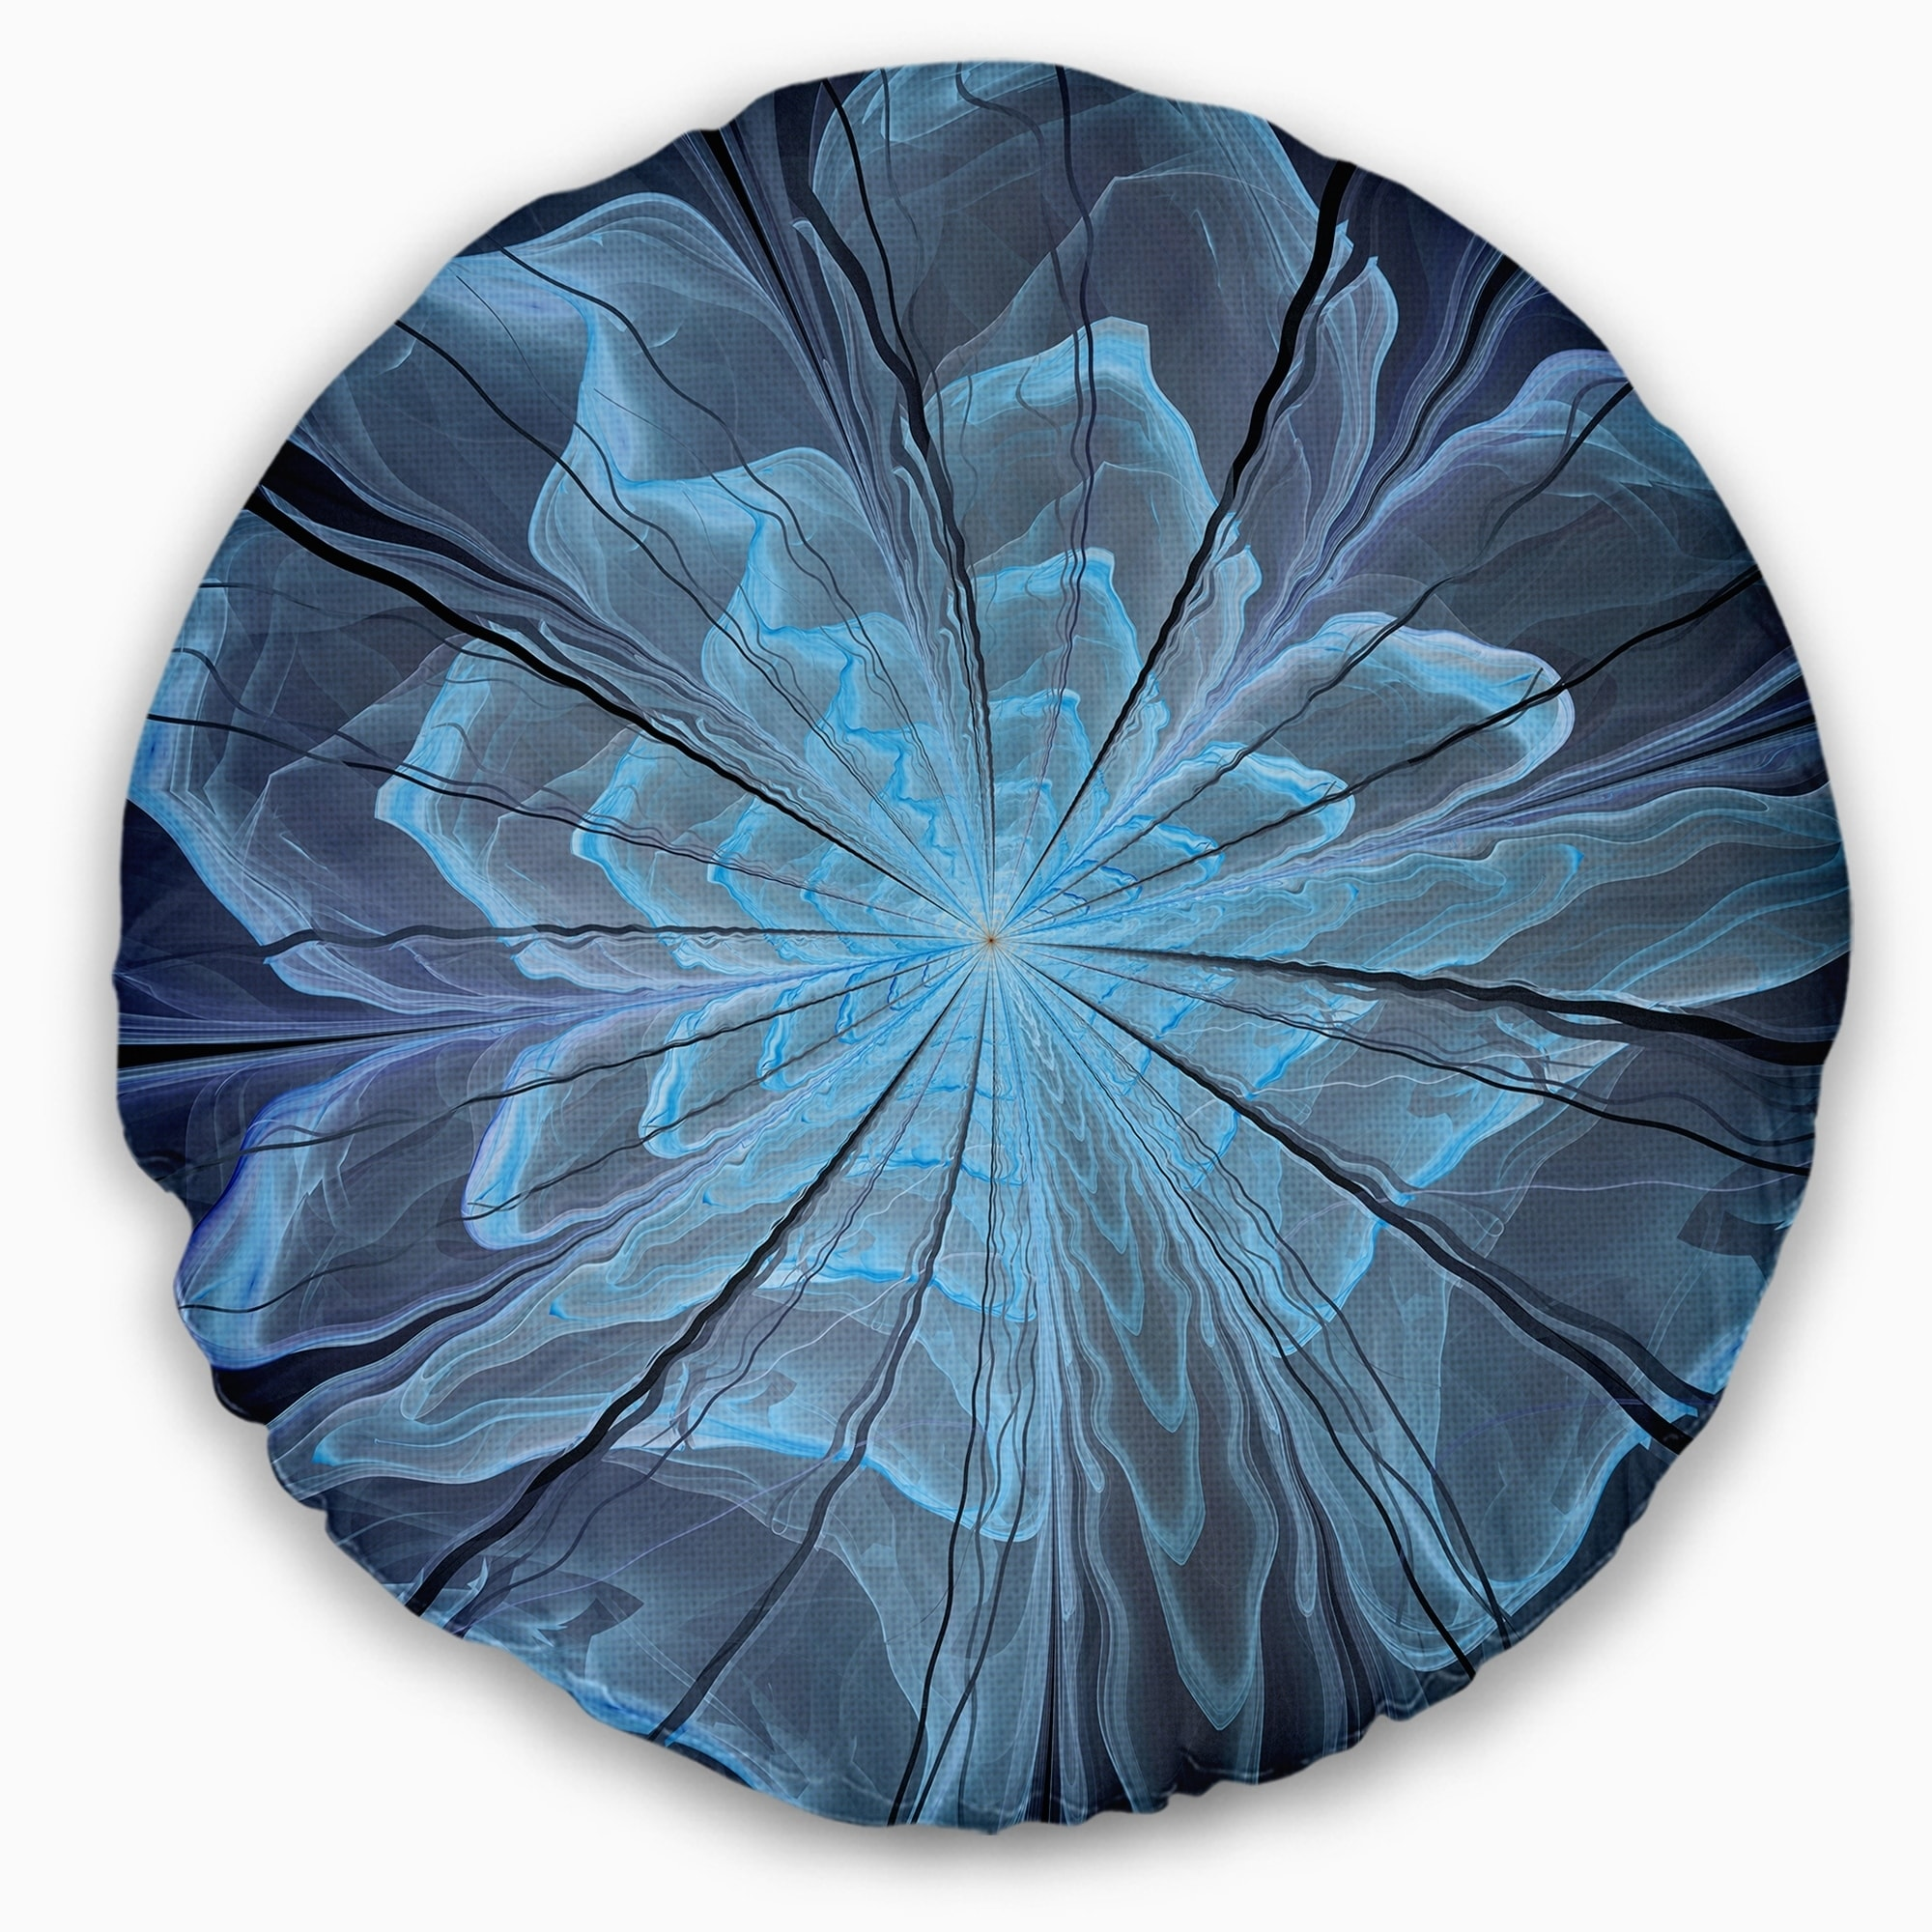 Sofa Throw Pillow 16 Designart CU12019-16-16-C Soft Blue Fractal Flower with Large Petals Floral Round Cushion Cover for Living Room